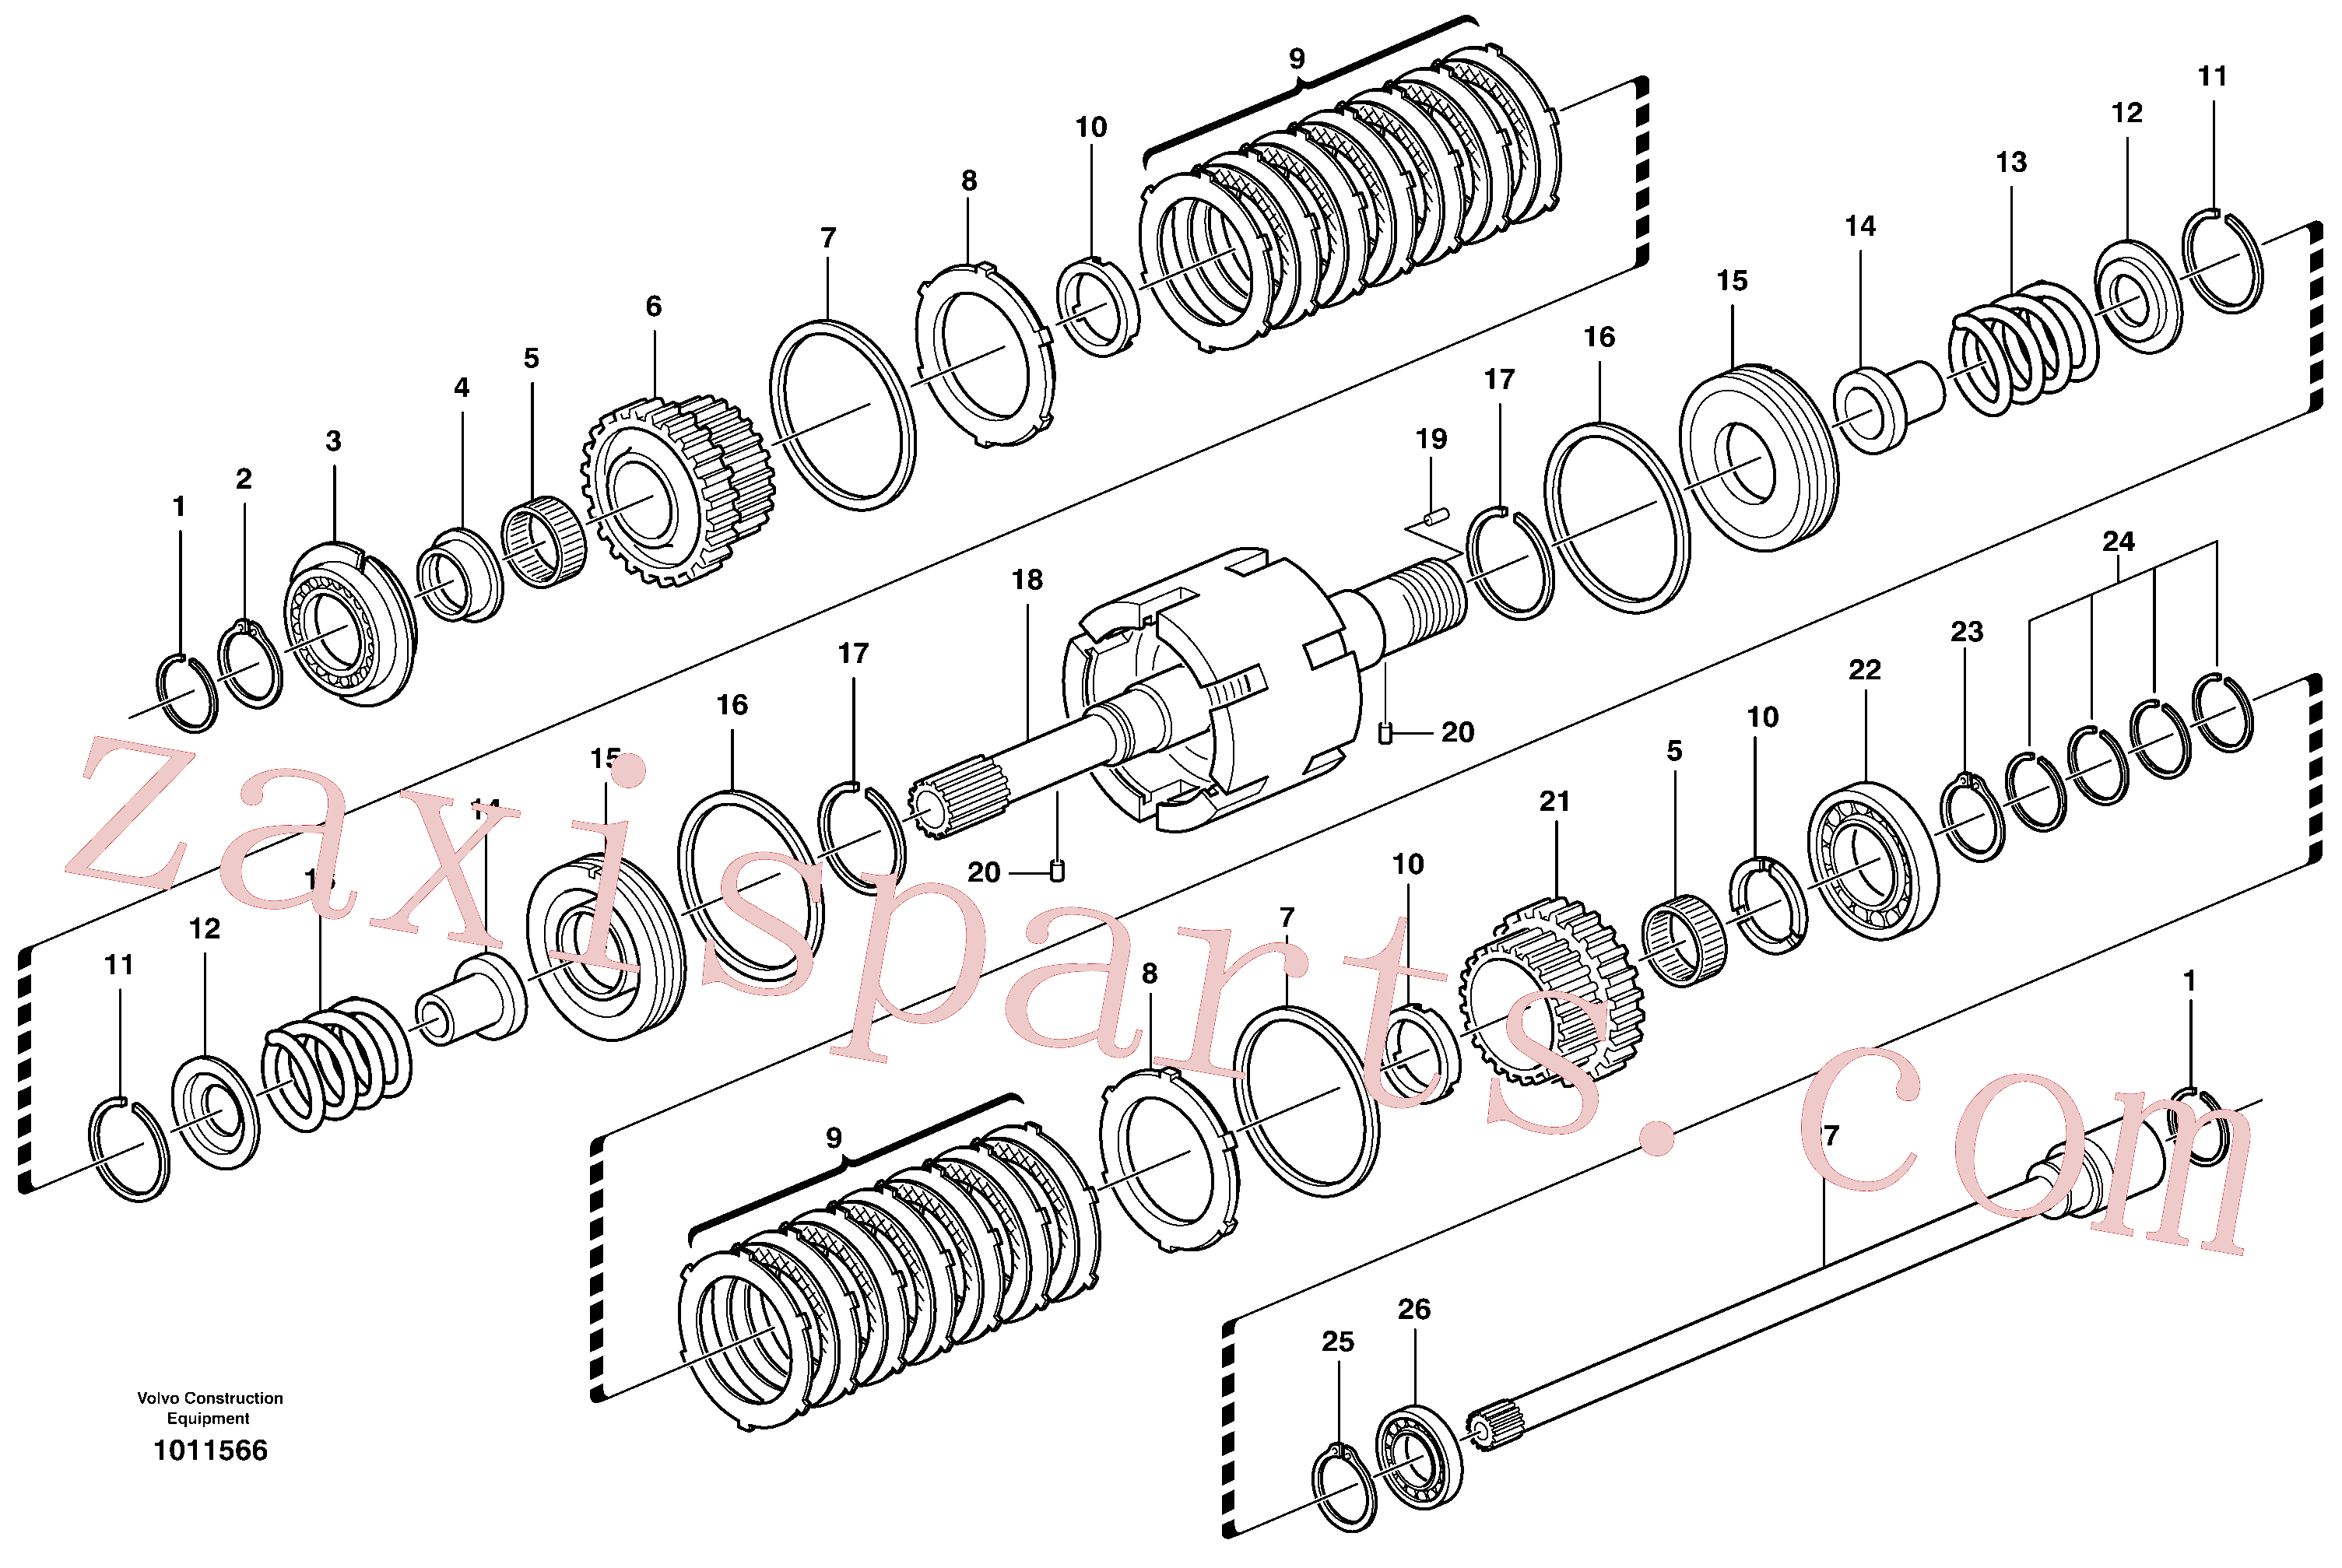 VOE11709087 for Volvo Clutch shaft forward/reverse(1011566 assembly)